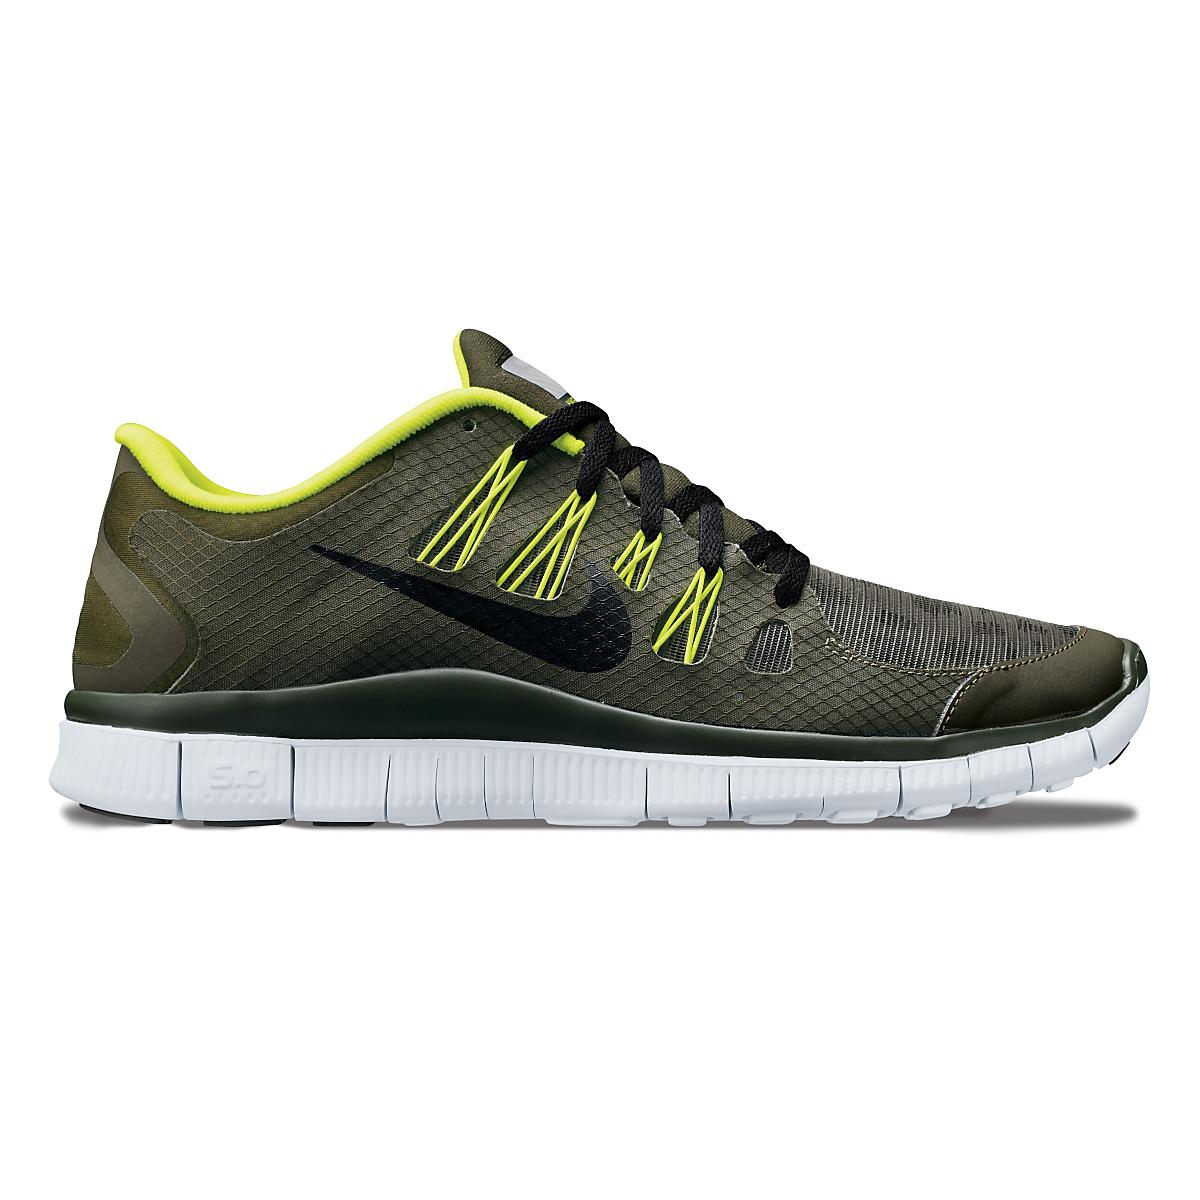 finest selection 14947 4ea77 where to buy shopping mens nike free 5.0 shield running shoe at road runner  sports f2d0b